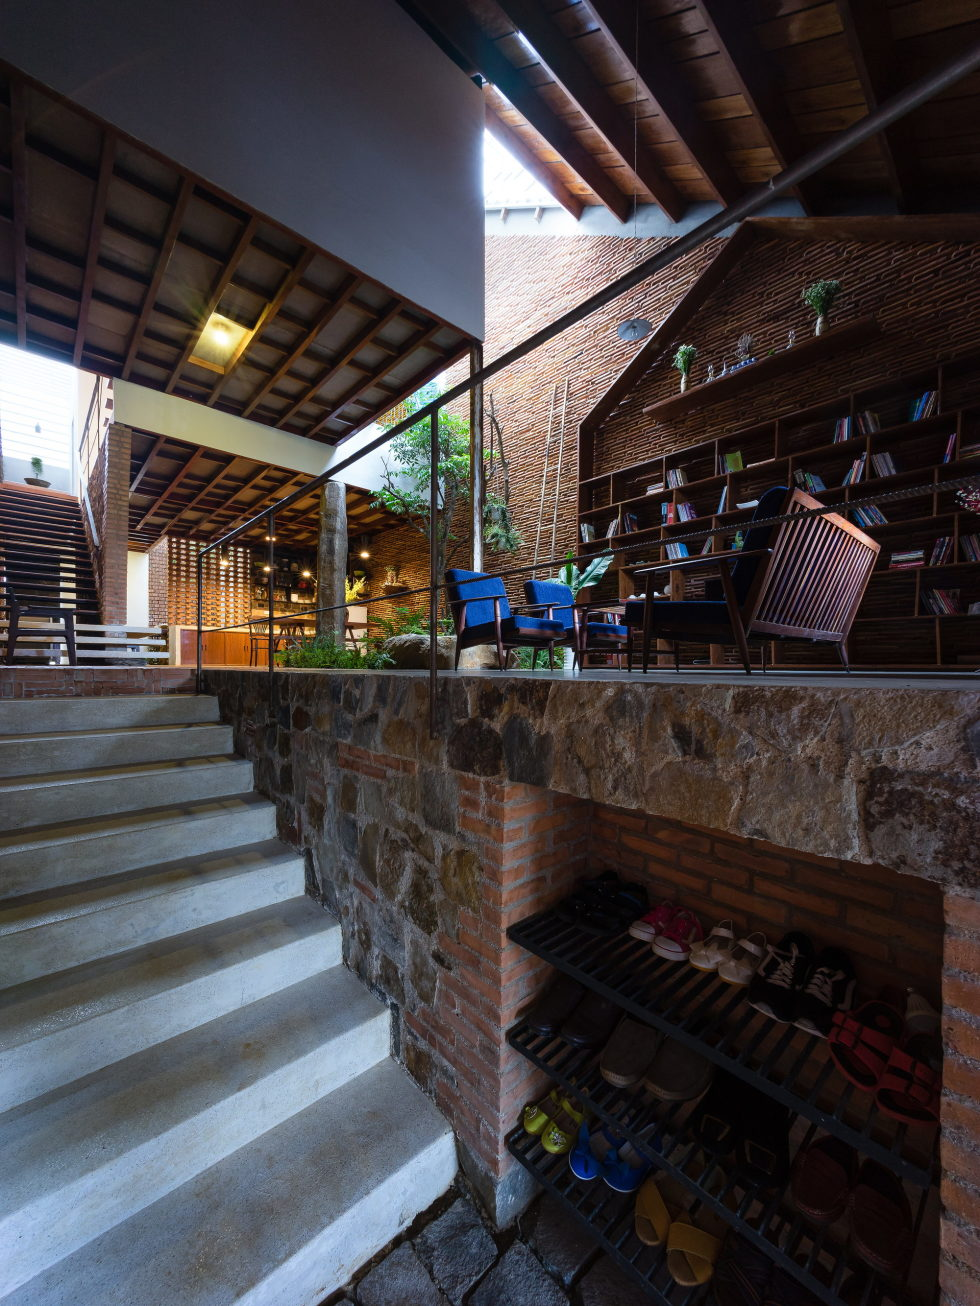 Uncle's House in Dalat, Vietnam upon the project of 3 Atelier 19